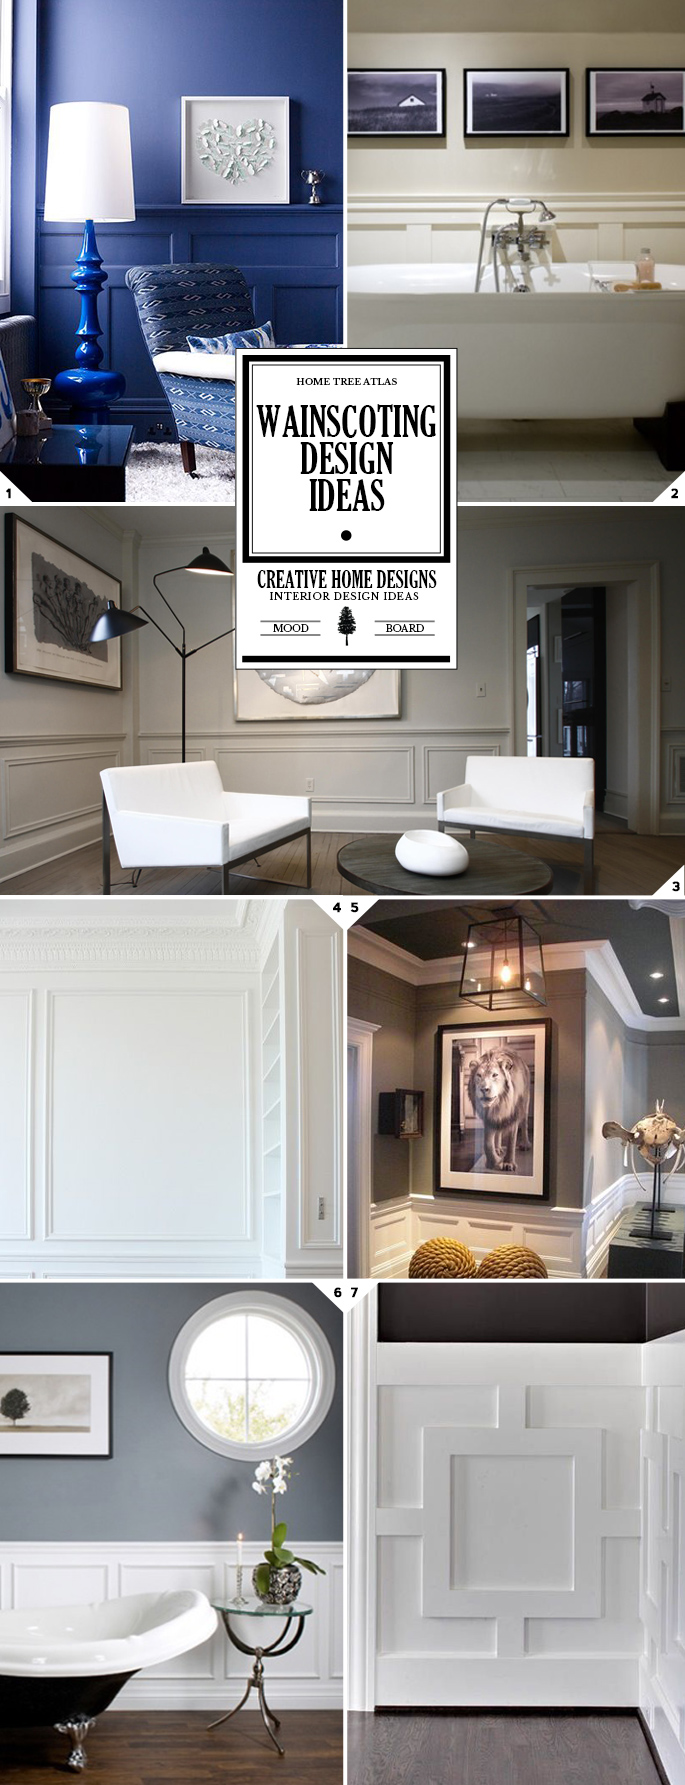 The Finishing Touch: Wainscoting Ideas and Designs